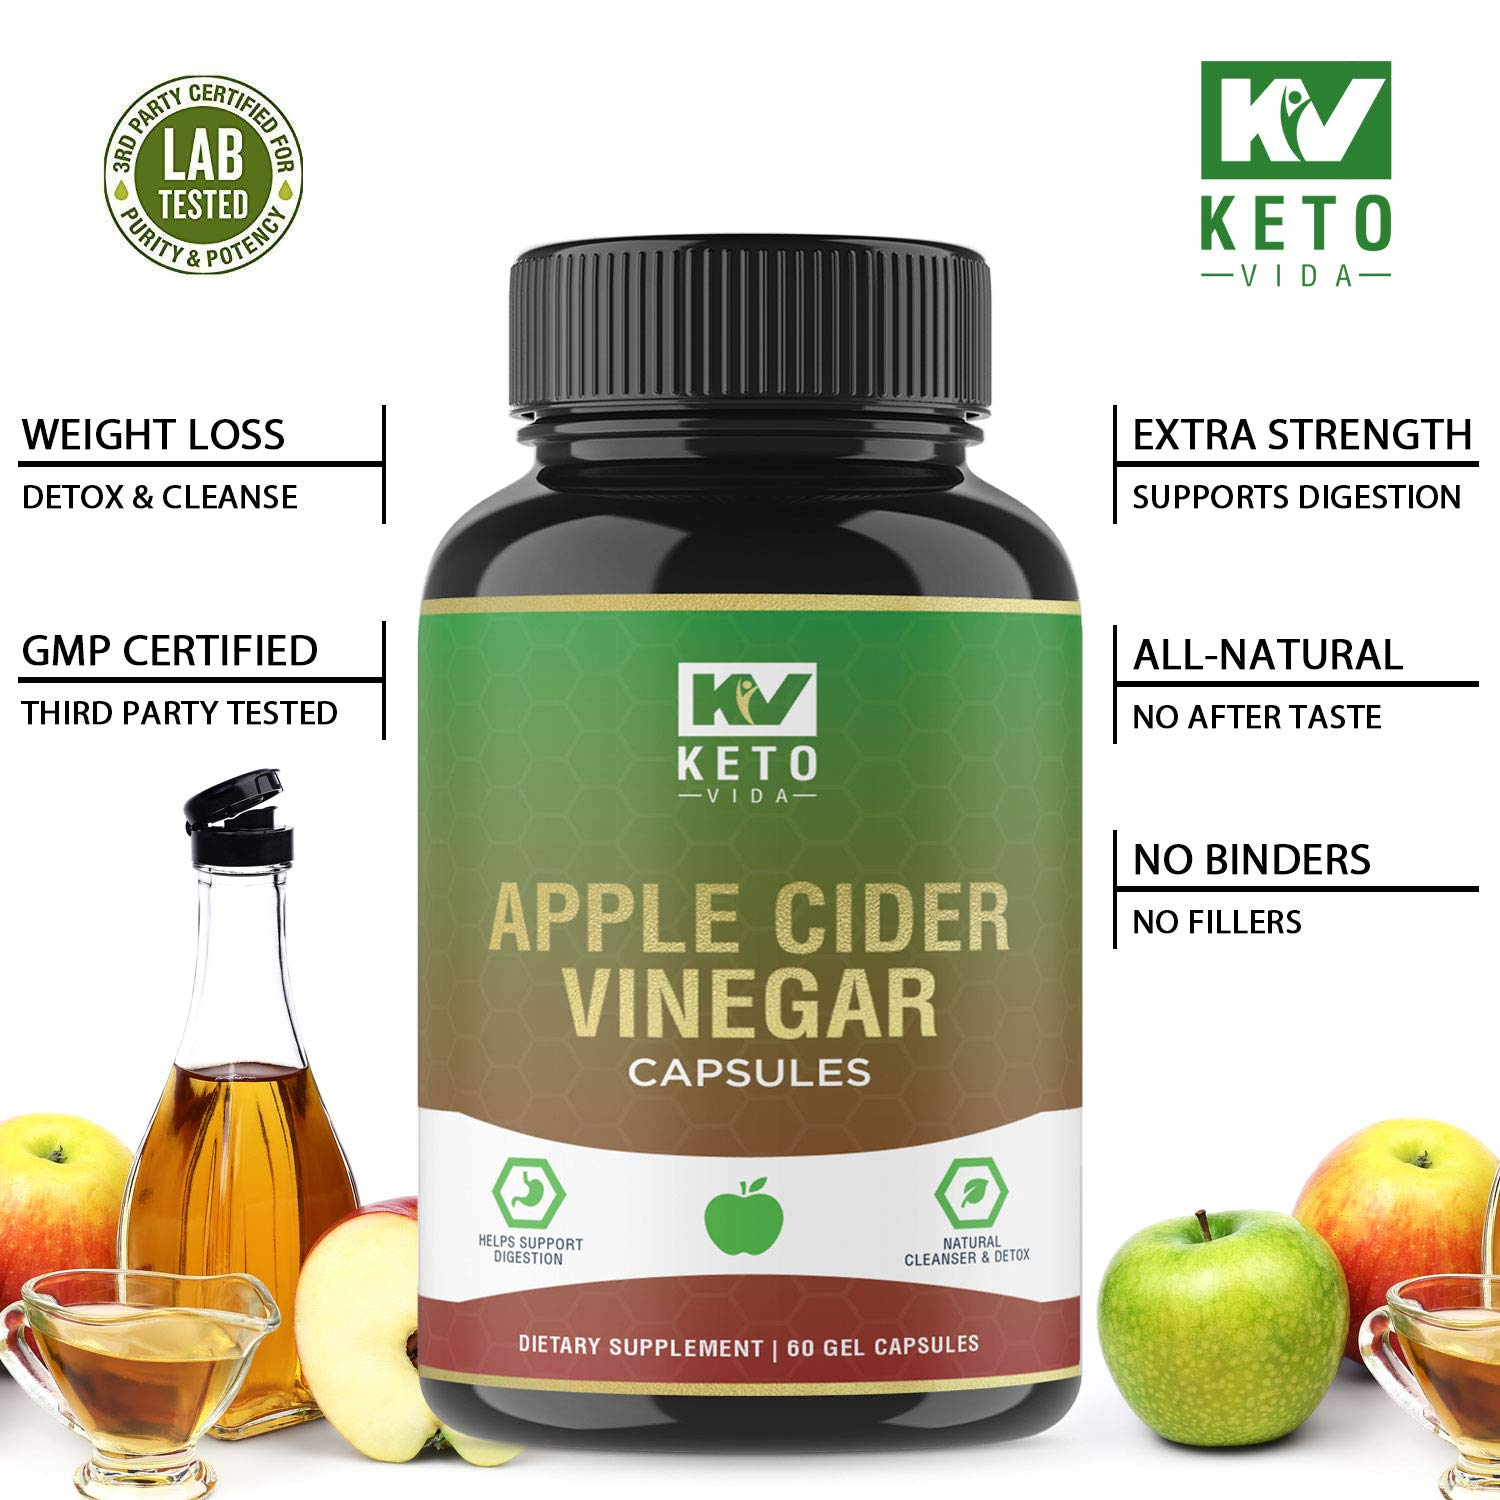 Apple Cider Vinegar Pills - Natural Detox and Weight Loss for Women and Men, Effective Cleanse to Help Digestion and Bloating Relief, Organic Extra Strength ACV Capsules by Keto Vida (Image #6)